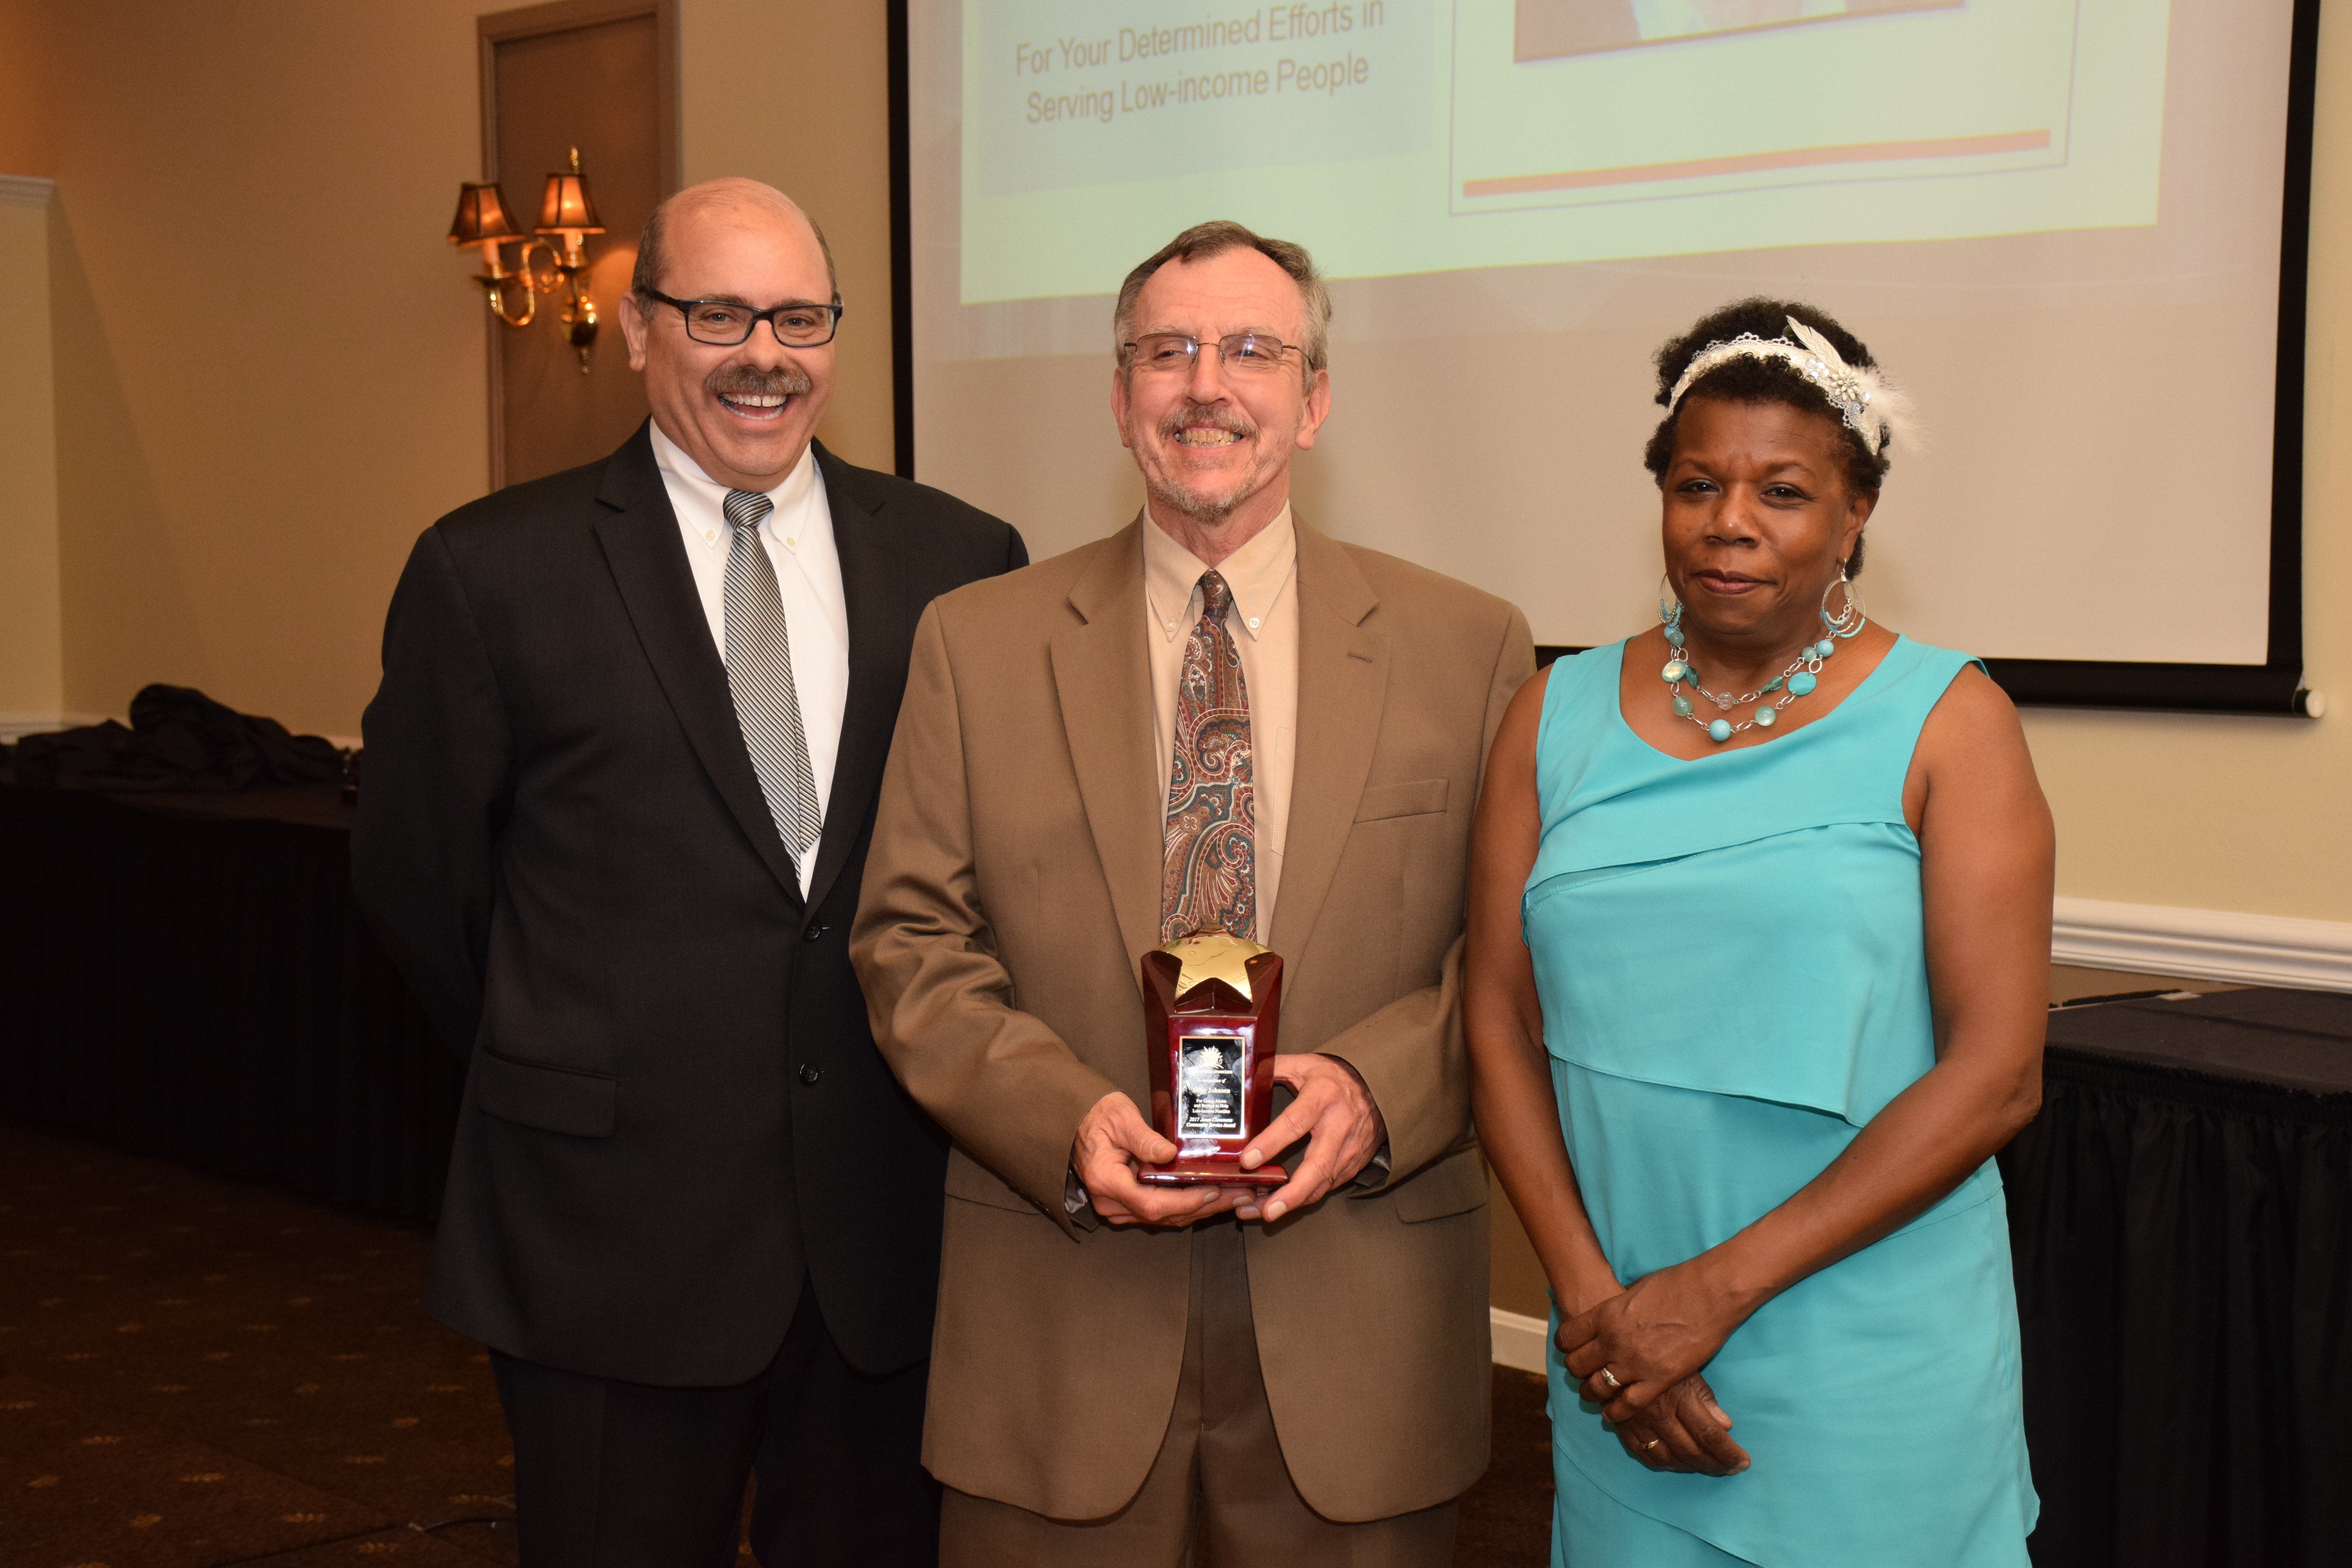 Left: Jeffrey Diver, SELF's Executive Director; Middle: Mike Johnson, 2017 Janet Clemmons Award Winner; Right: Lori Elliott, SELF's Board President , at SELF's Roaring '20s Annual Awards Dinner.